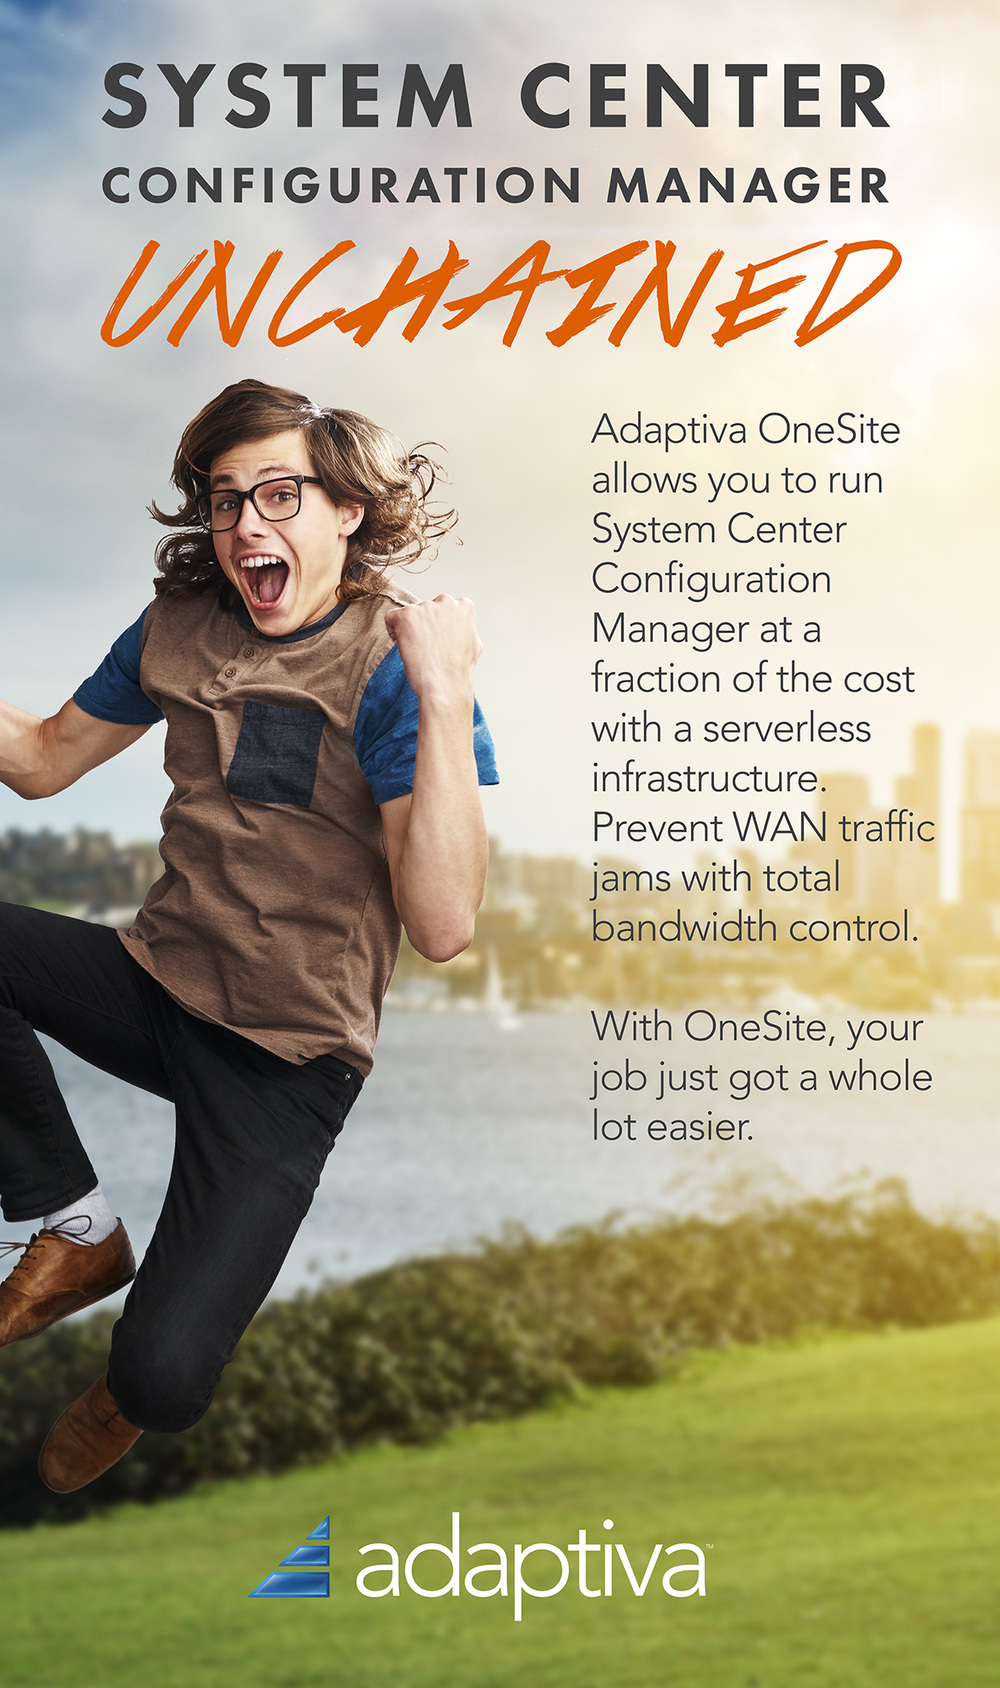 Adaptiva: SCCM Unchained